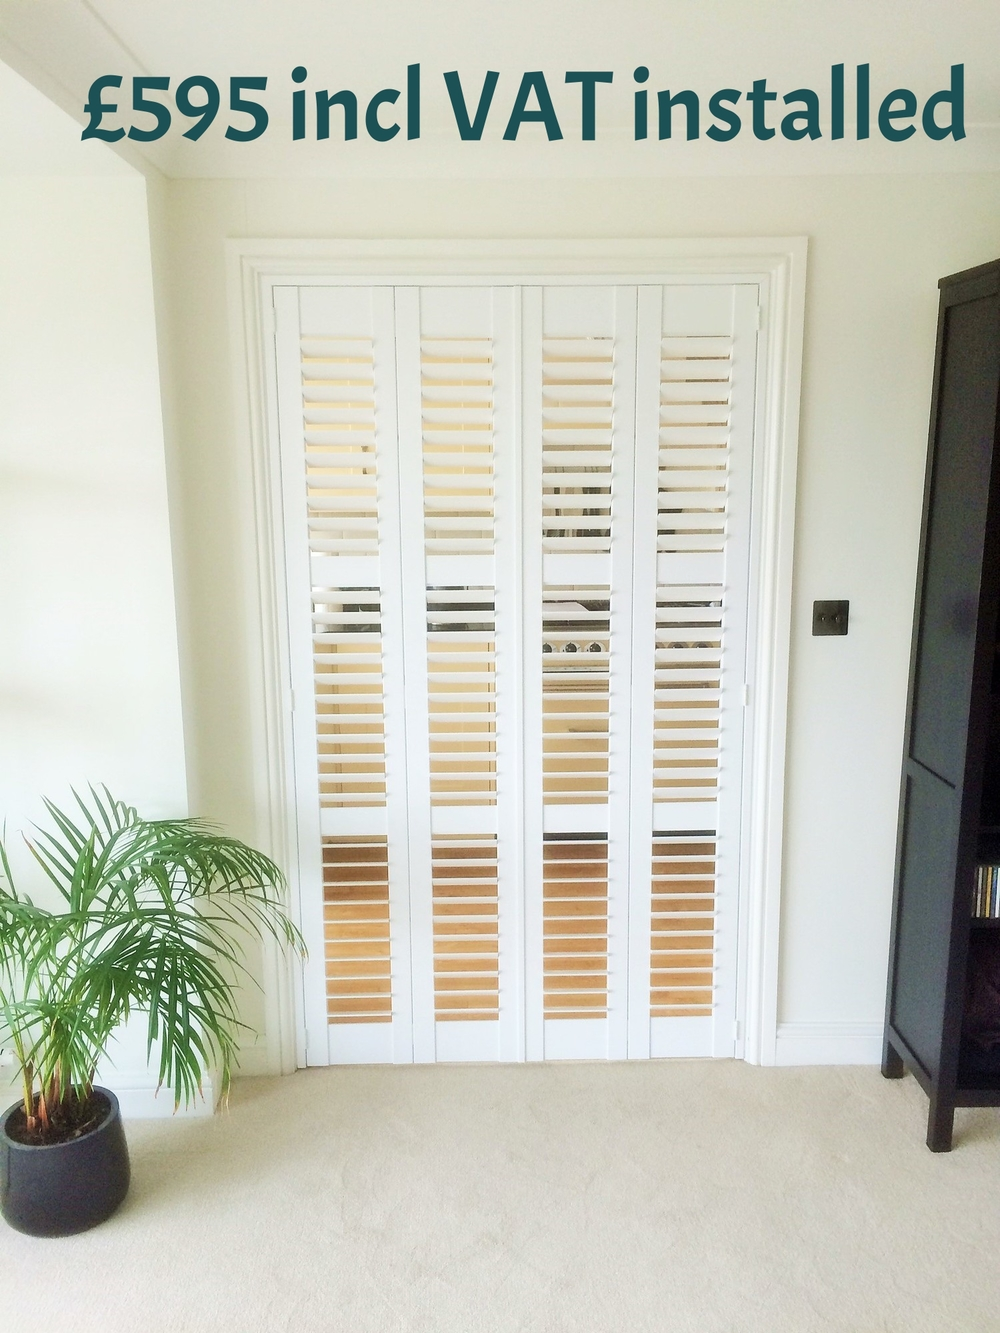 interior-wooden-type-shutters-as-room-dividers-to-section-rooms-Wimborne-Dorset